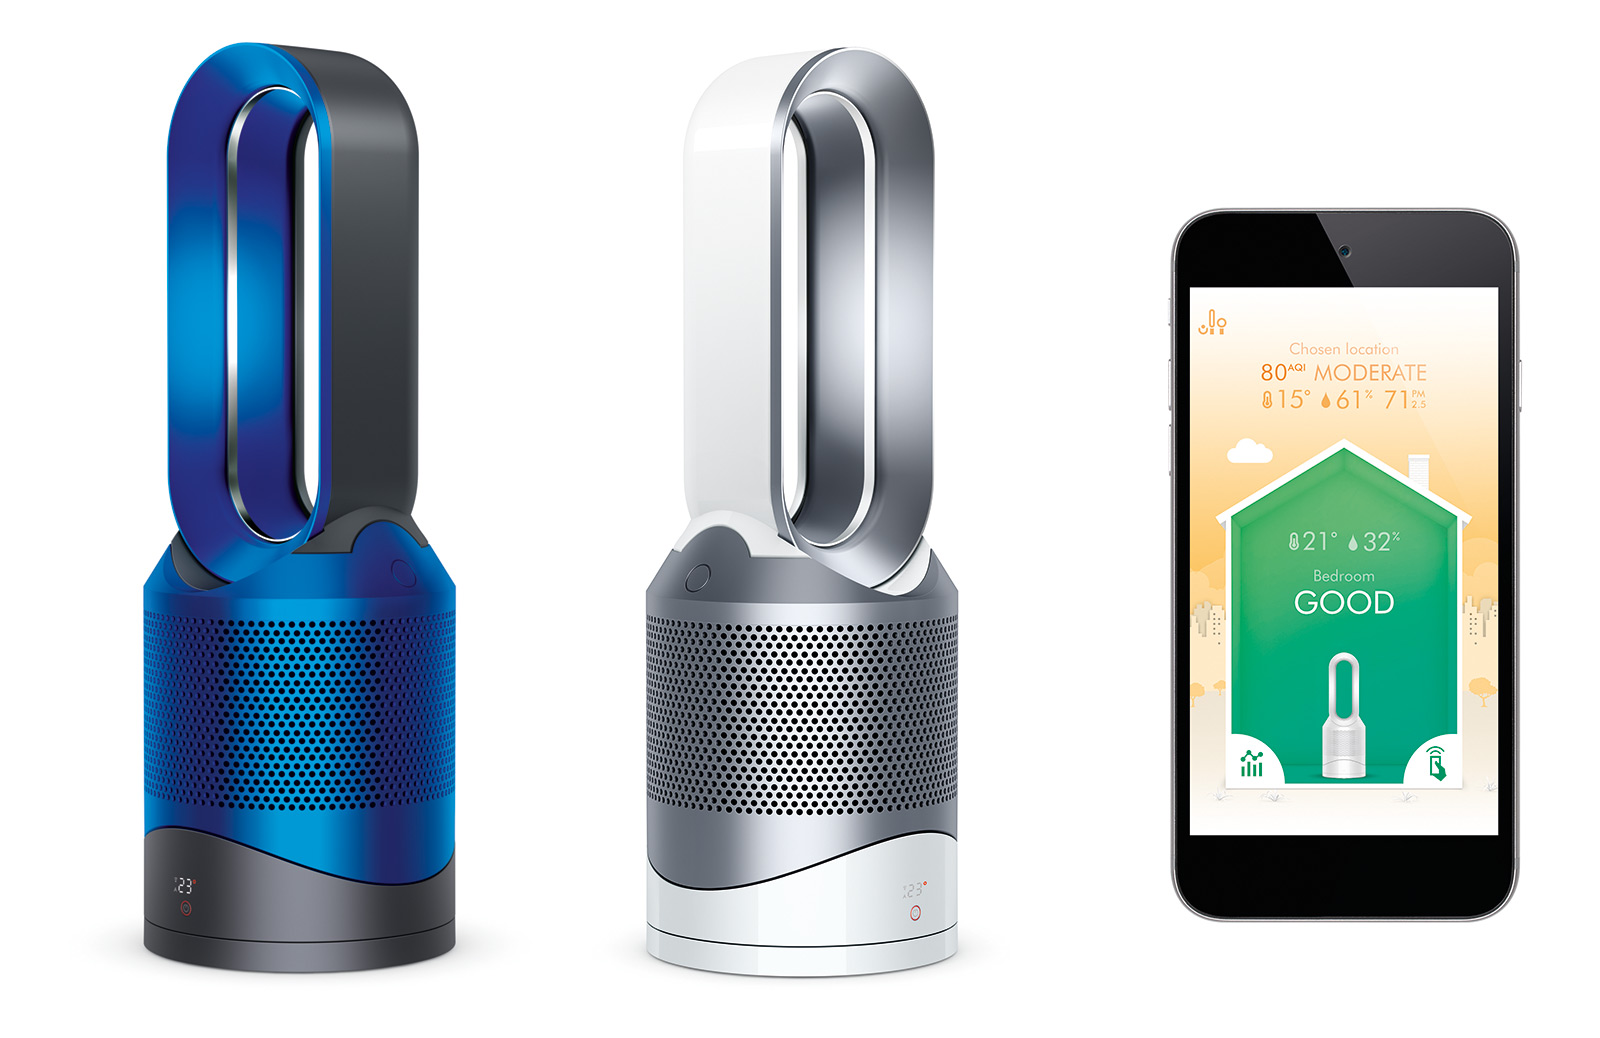 Dyson's New $600 Smart-Fan Heats, Cools, and Purifies Air